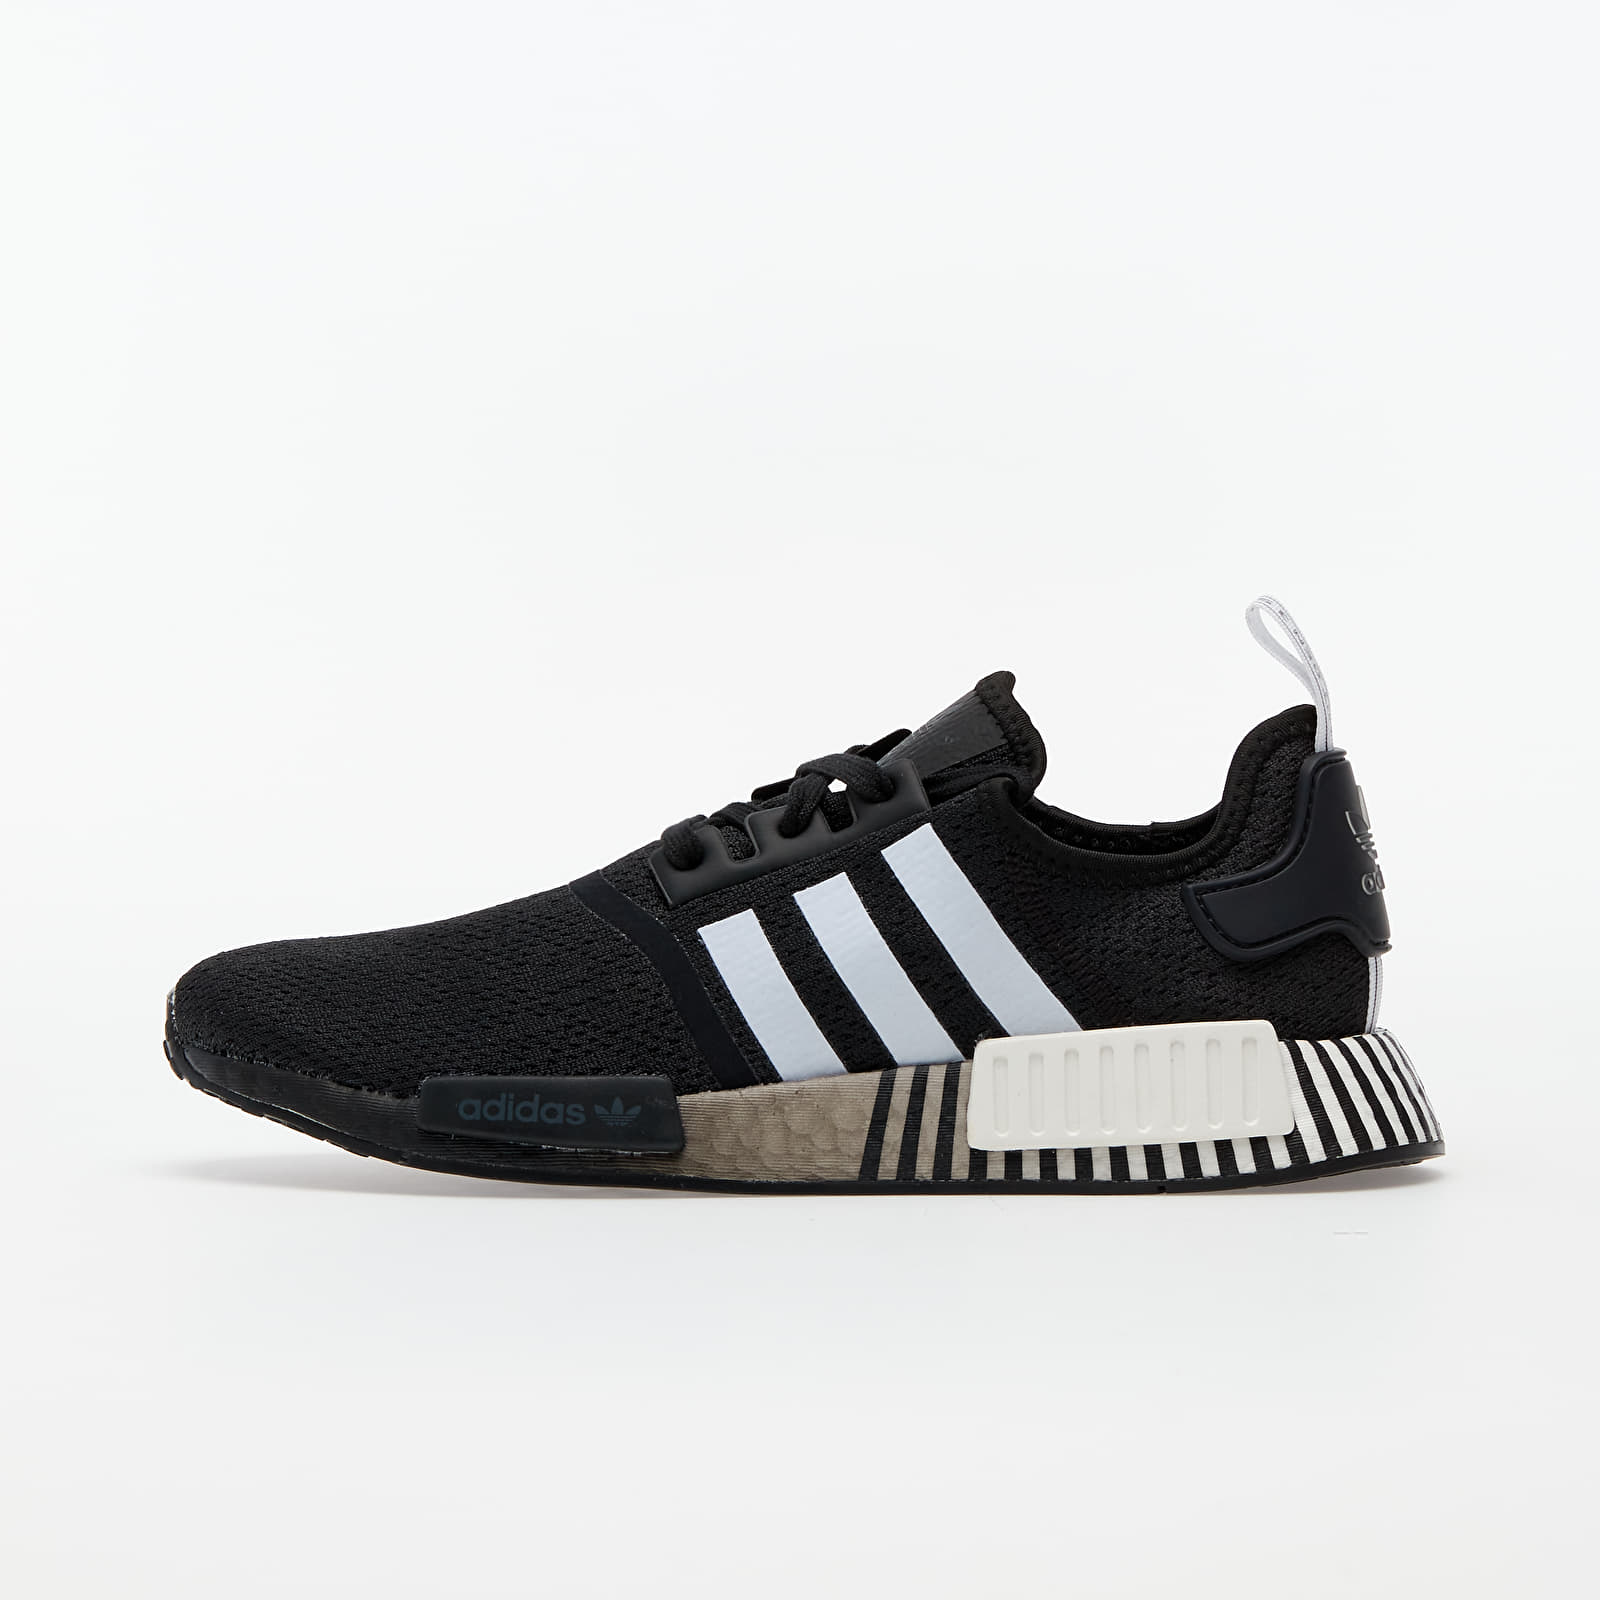 adidas NMD_R1 Core Black/ Ftw White/ Core Black EUR 45 1/3